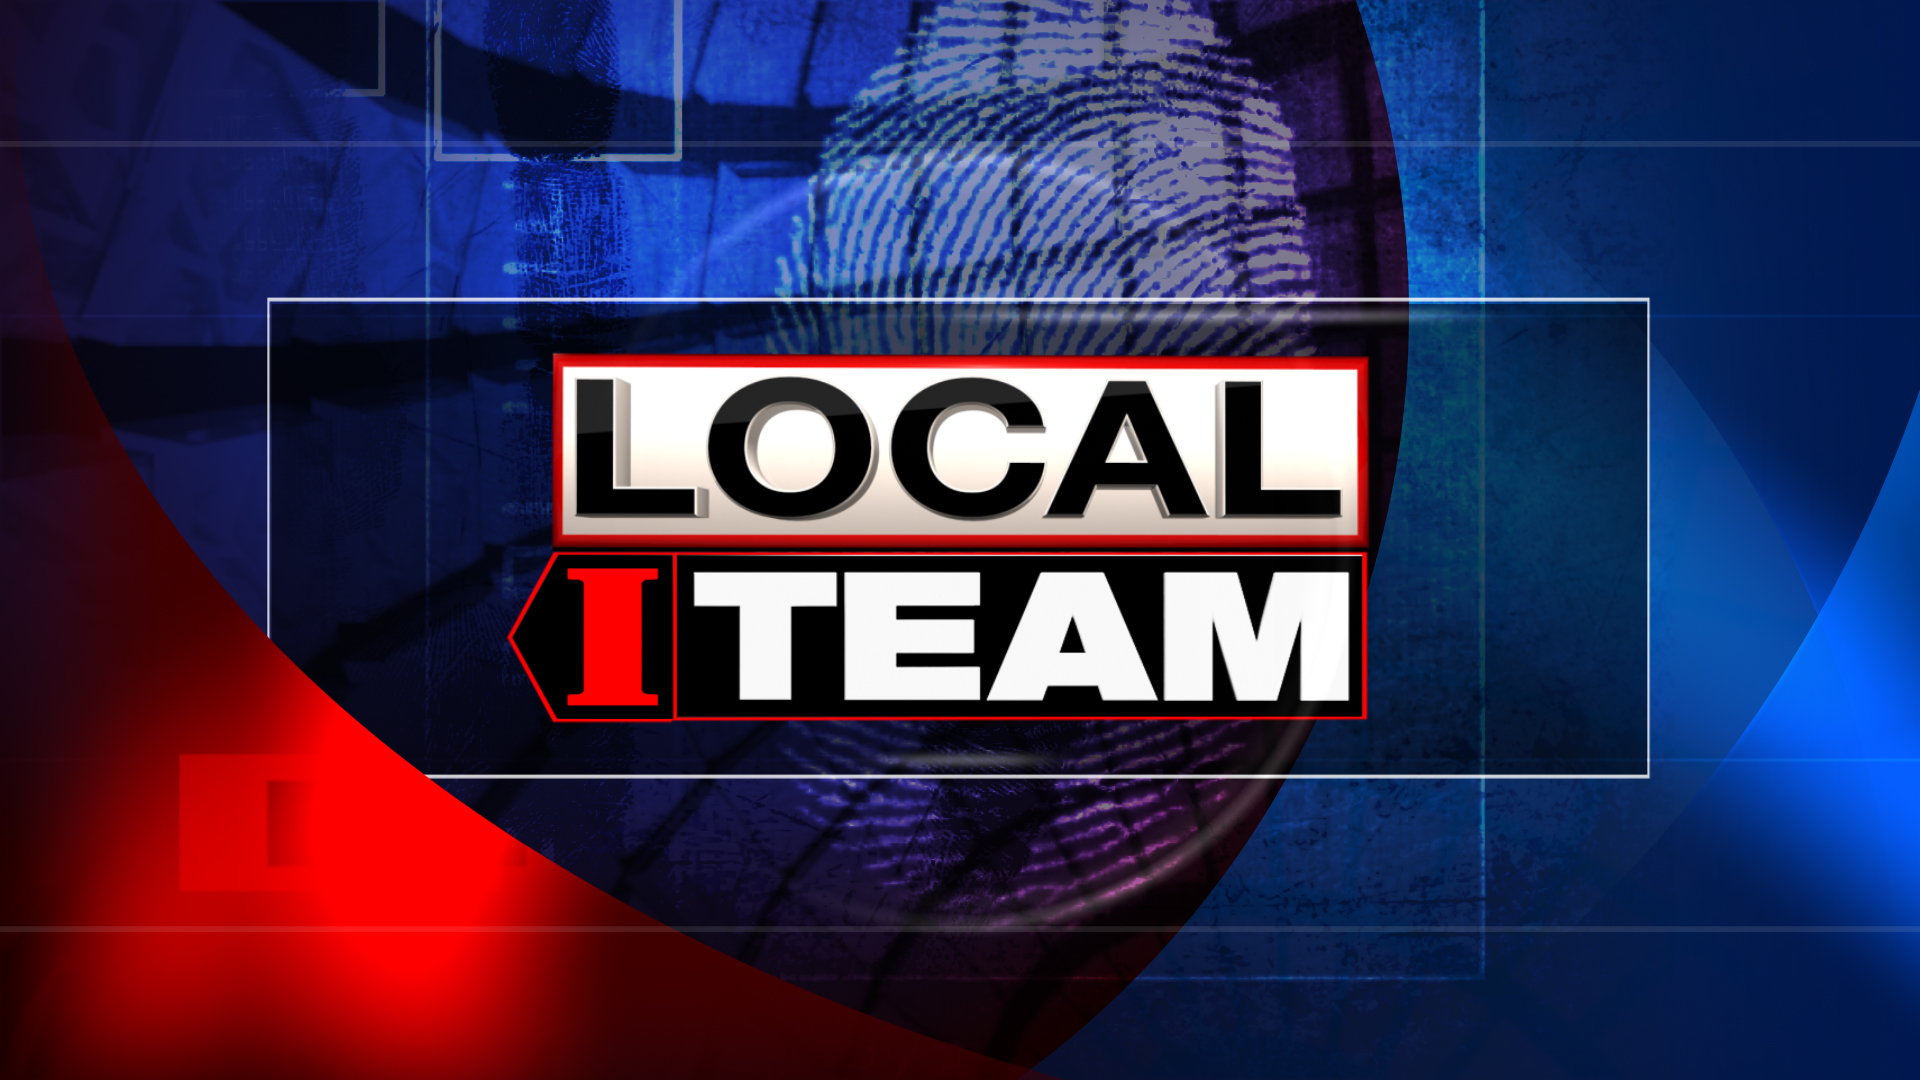 Local I Team Midsouth Memphis Localmemphis